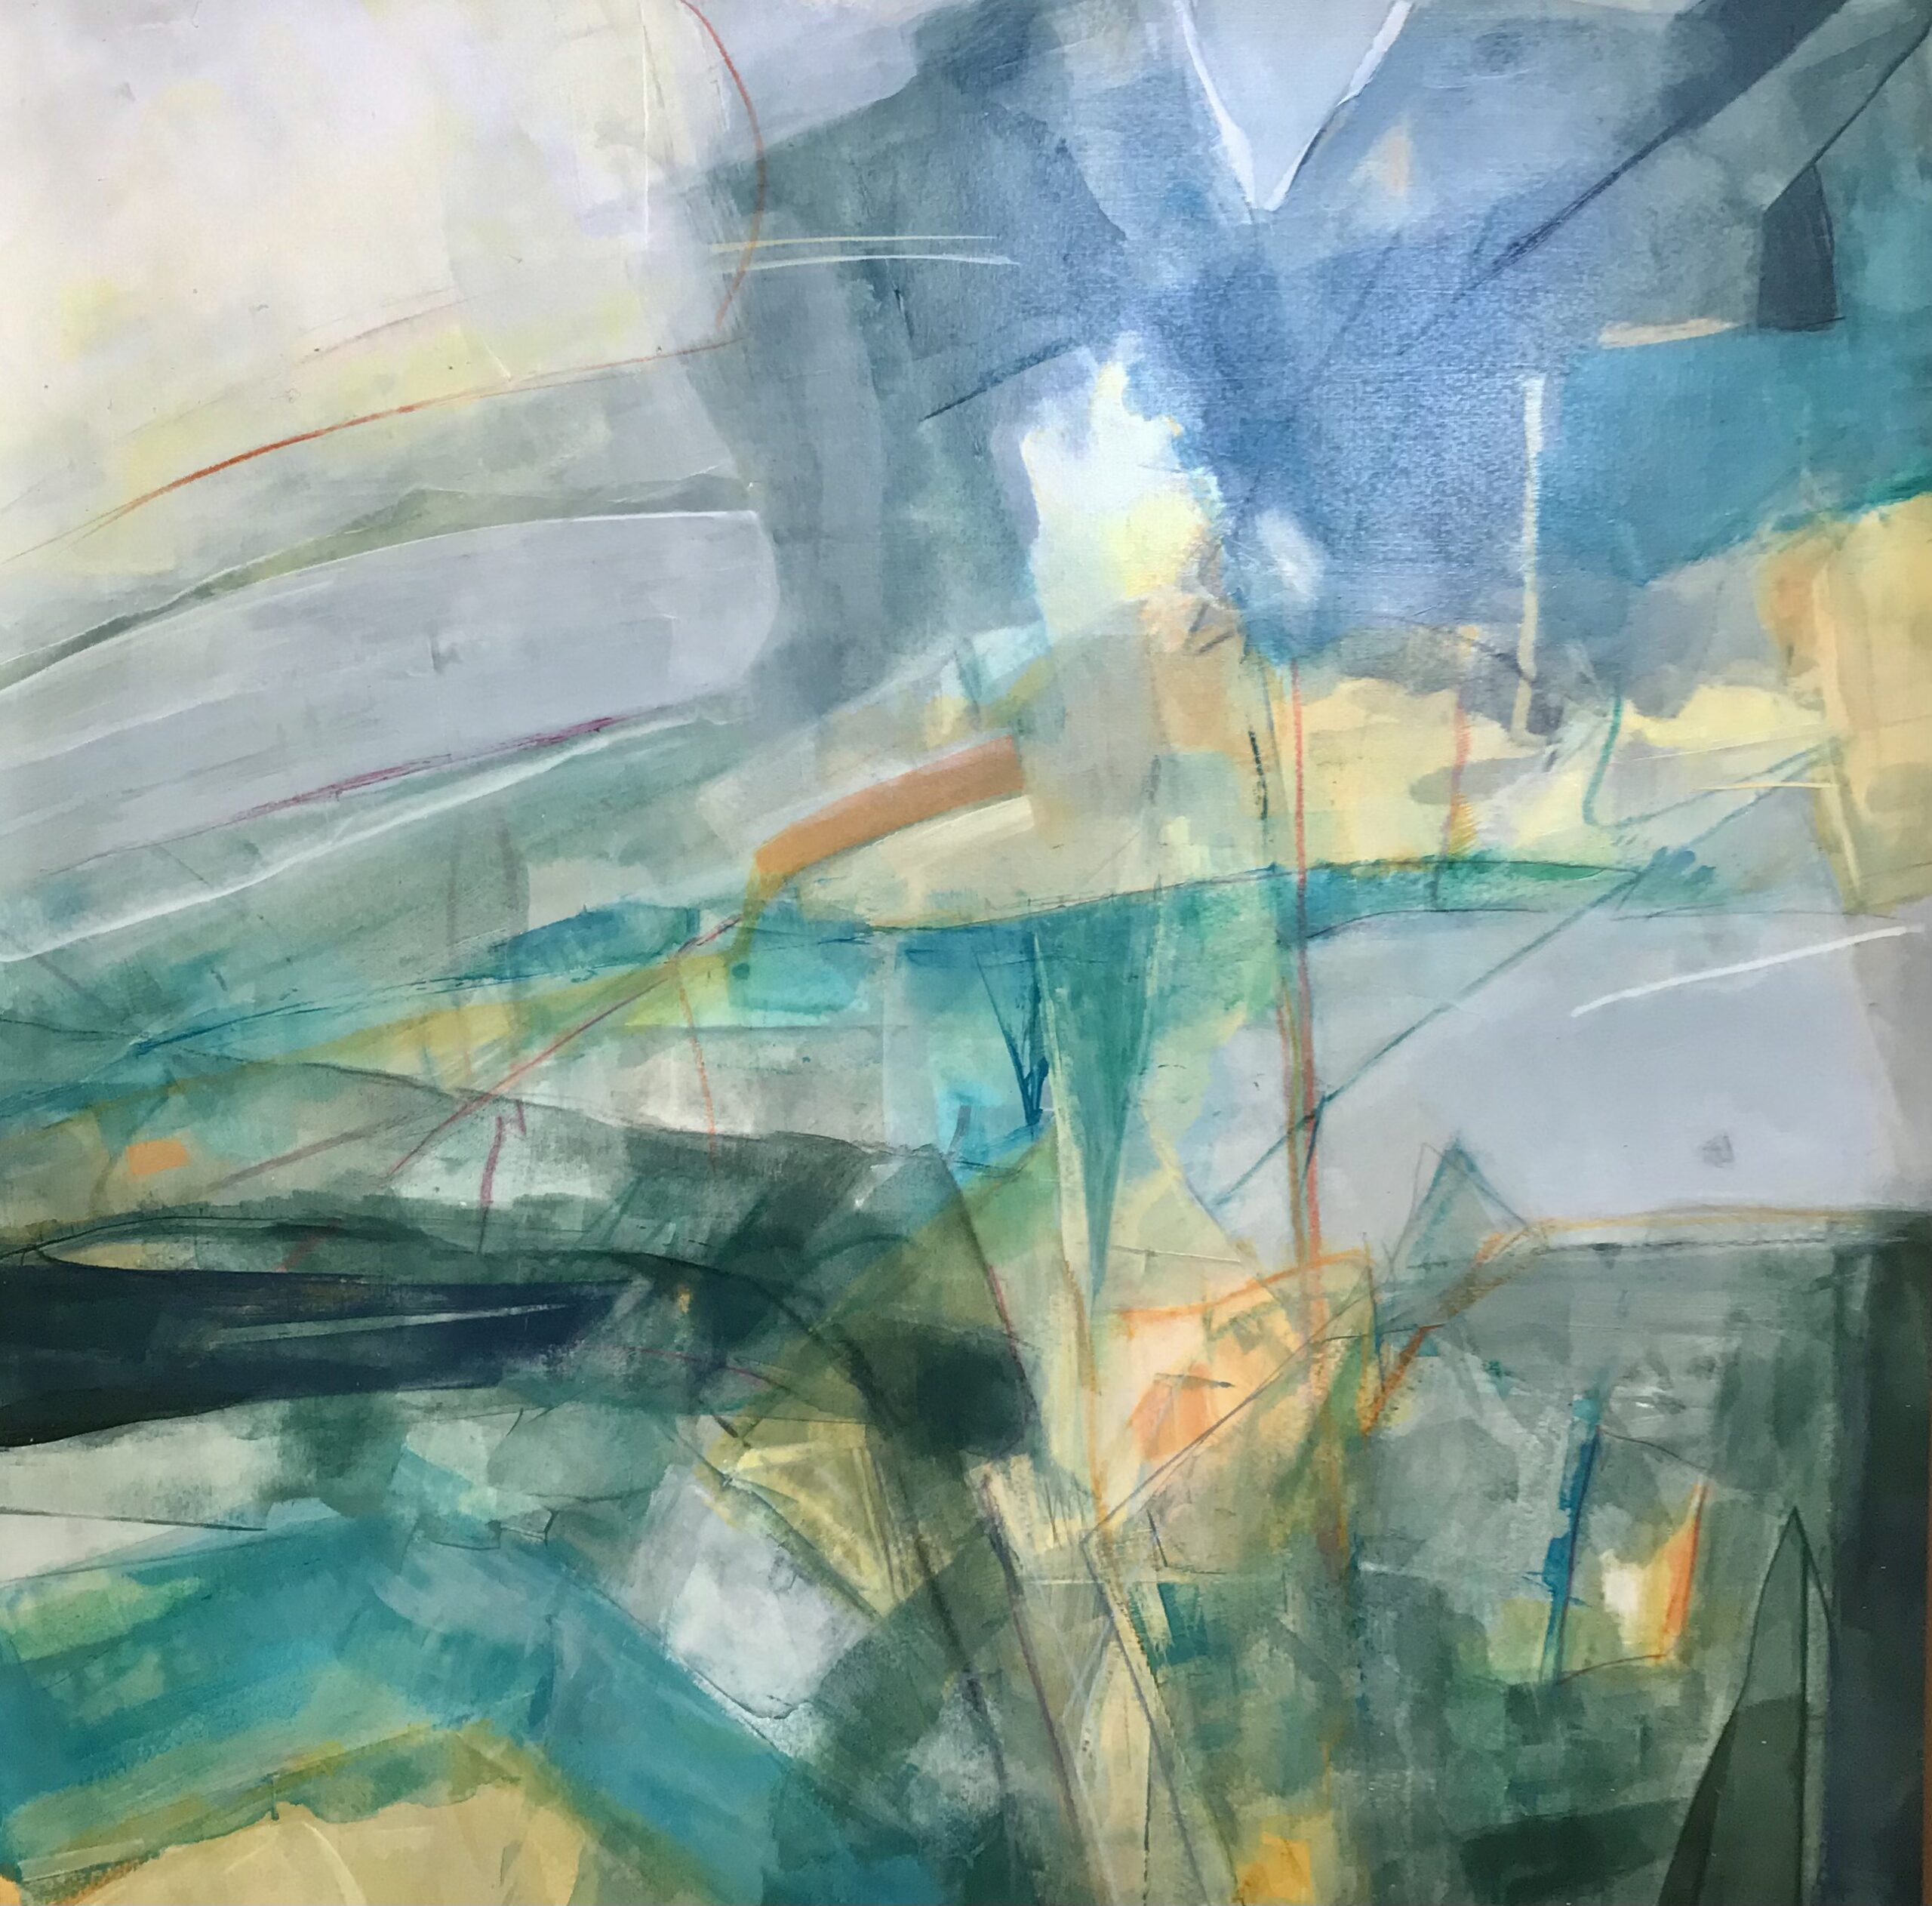 Annie Green, Made of light, mixed media on board, 56x56cm- framed